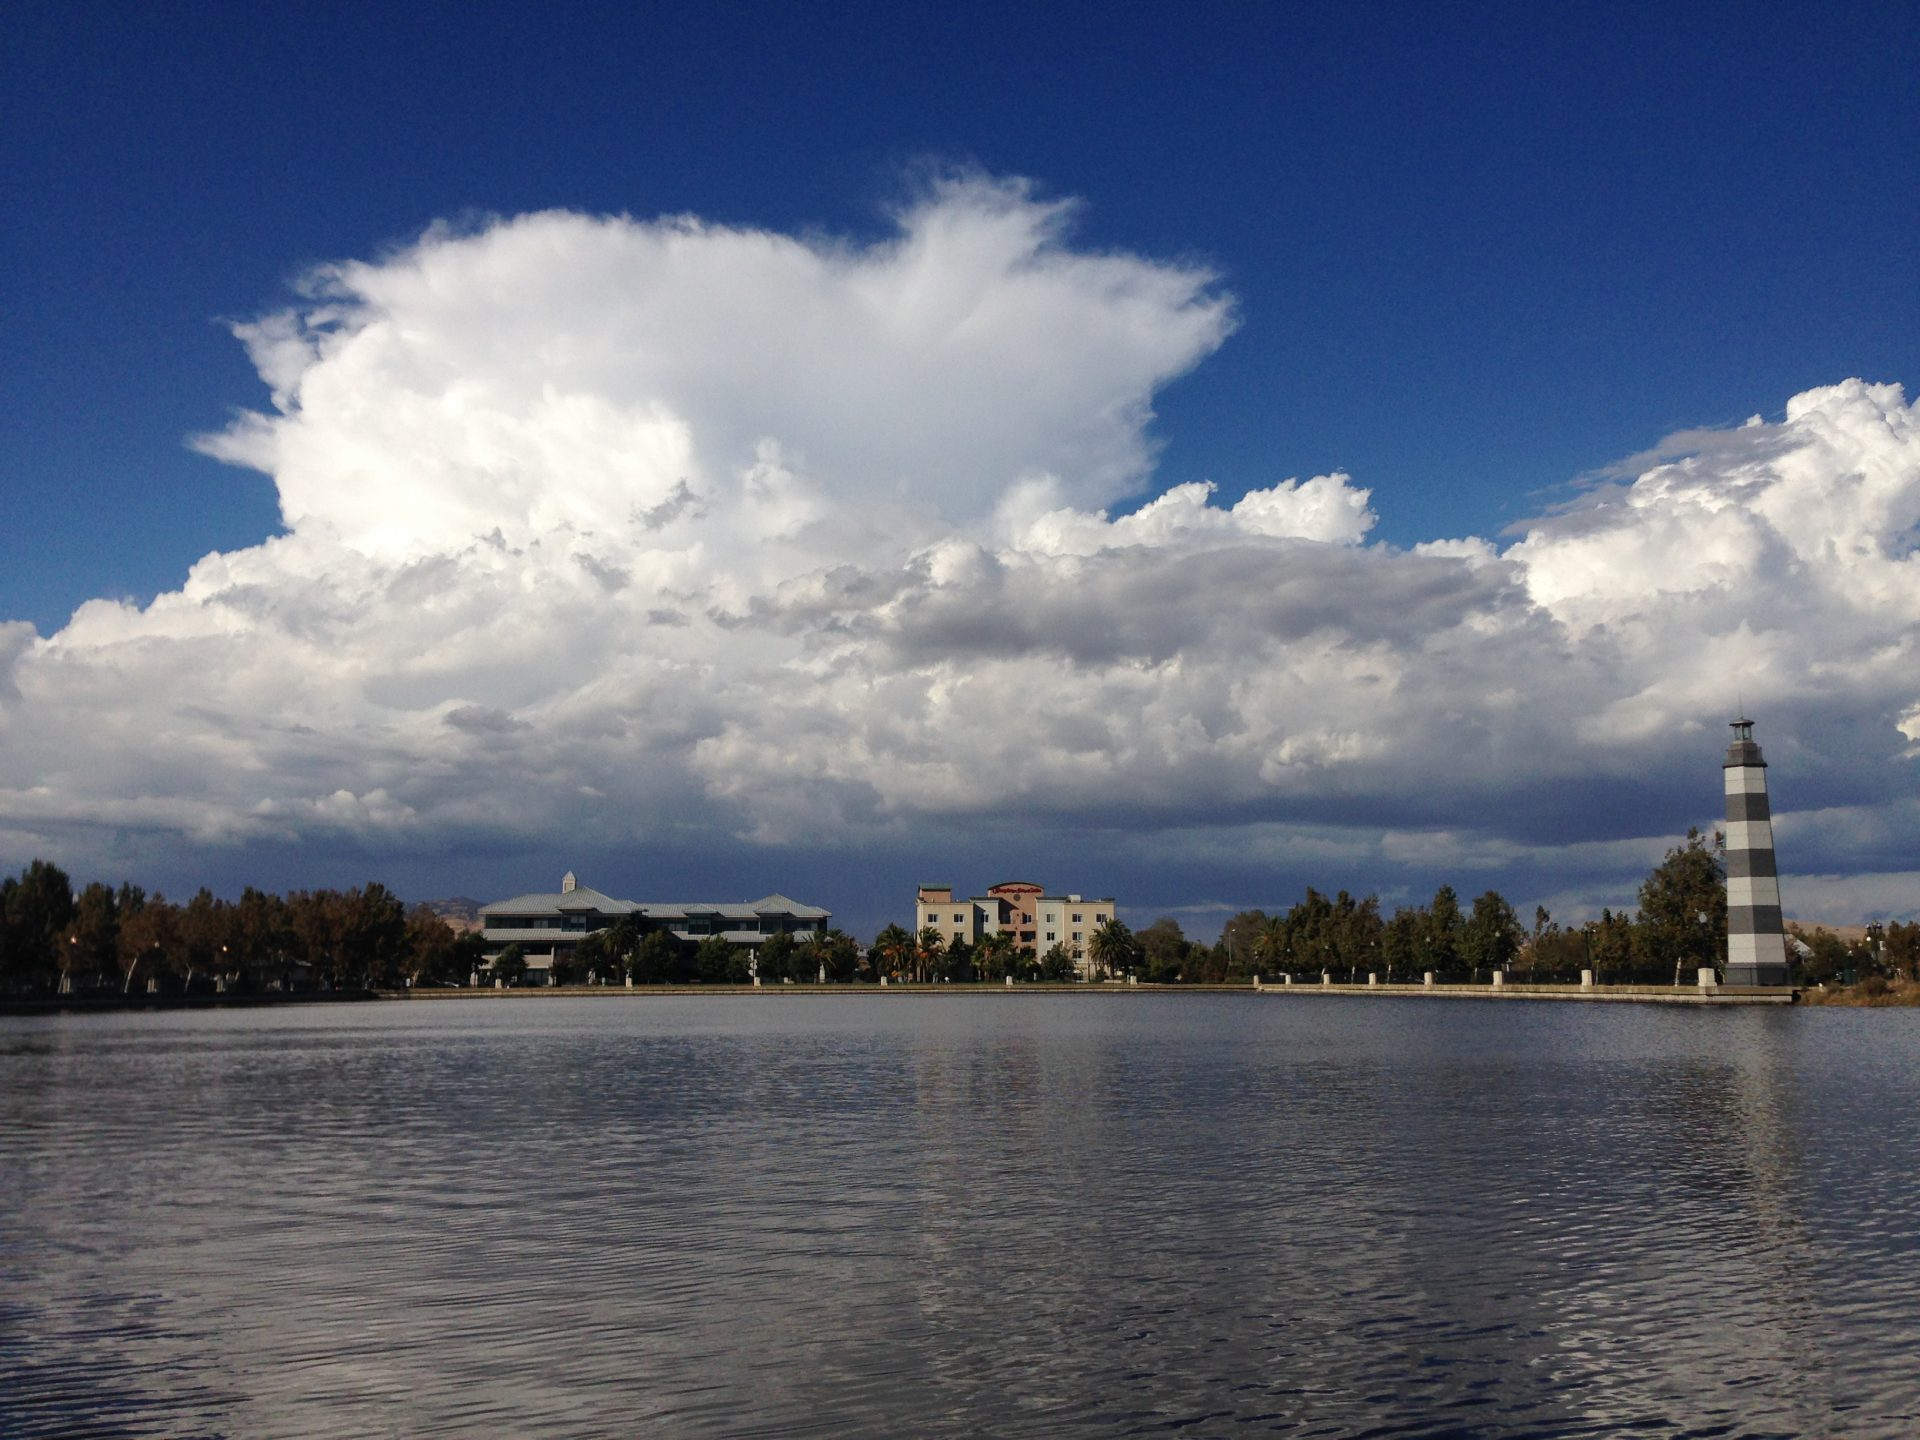 Looking across water to dramatic clouds in blue sky